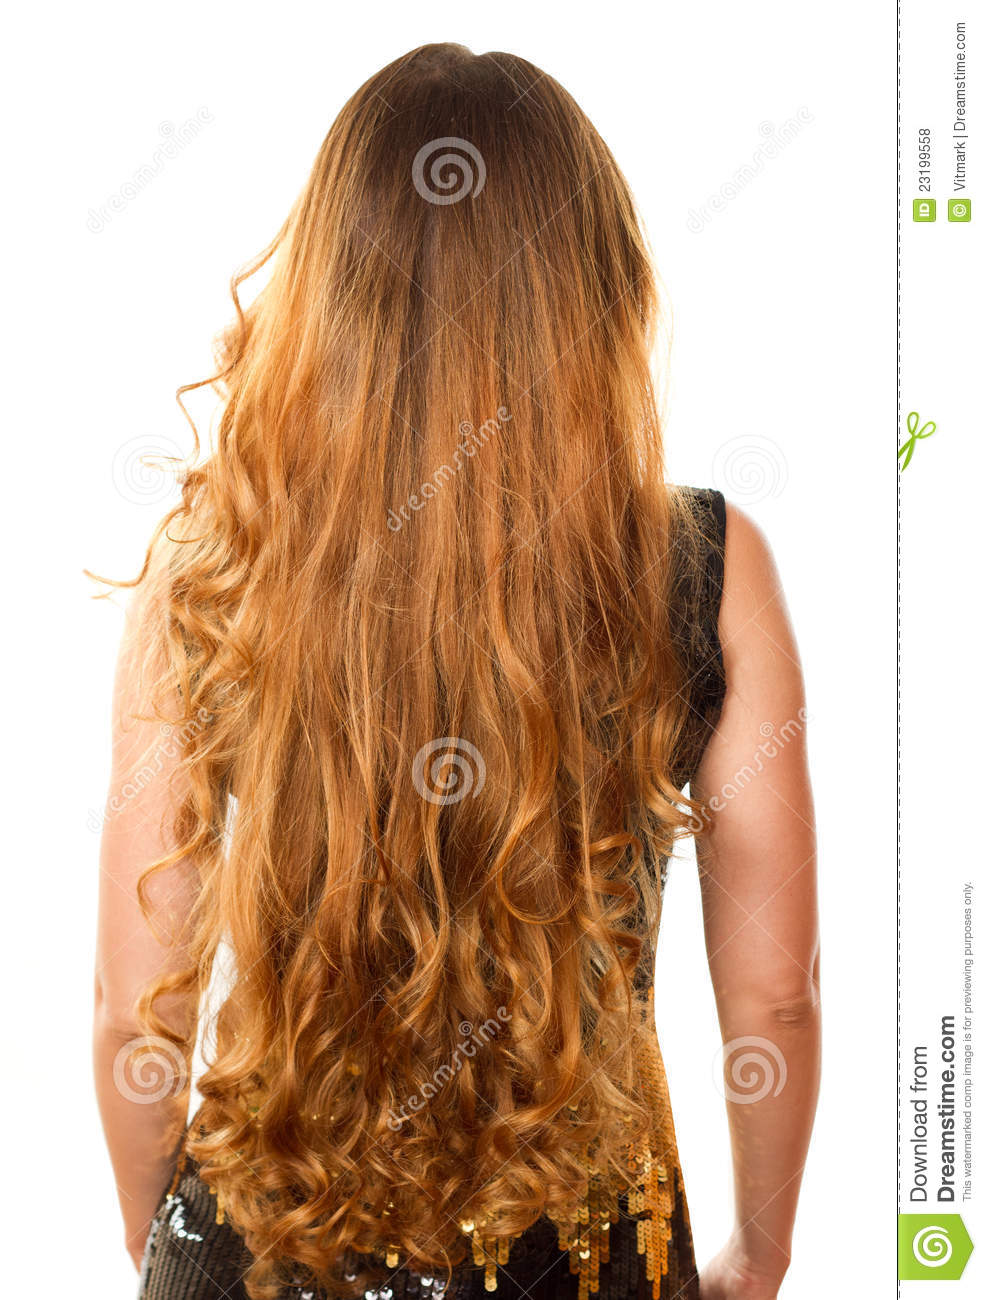 hairstyle from long curly hair from the back royalty free